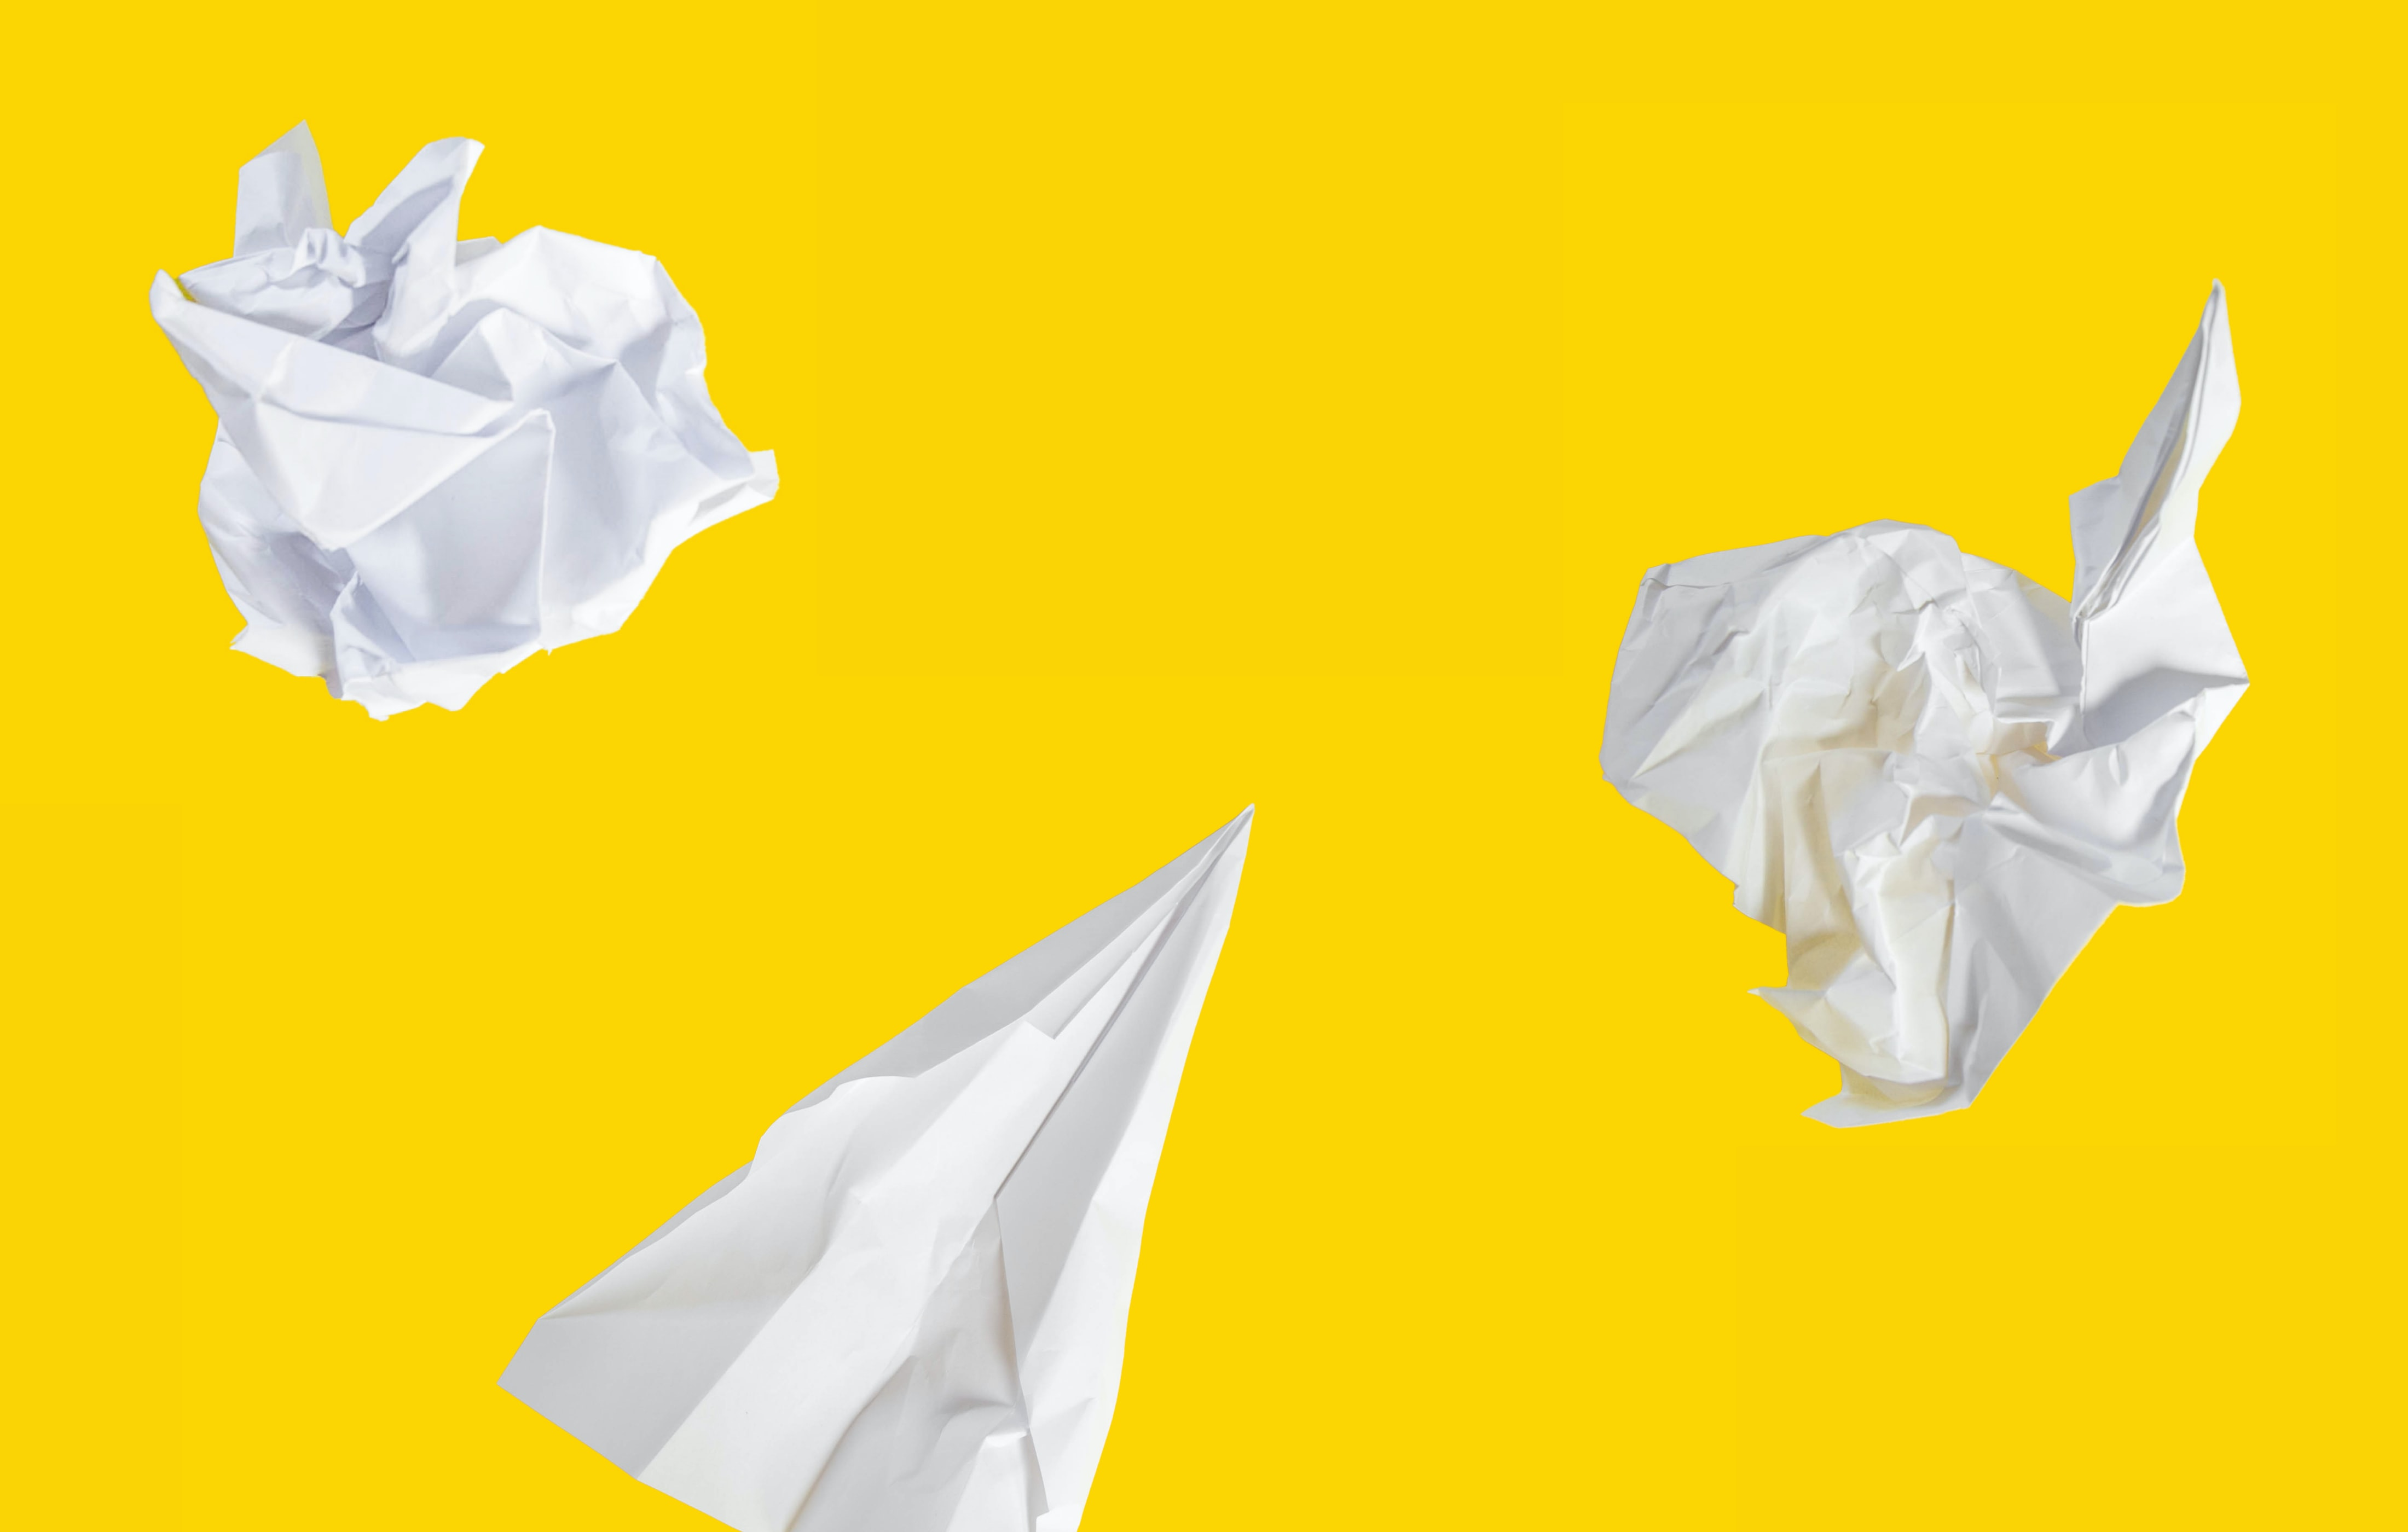 yellow background and paper